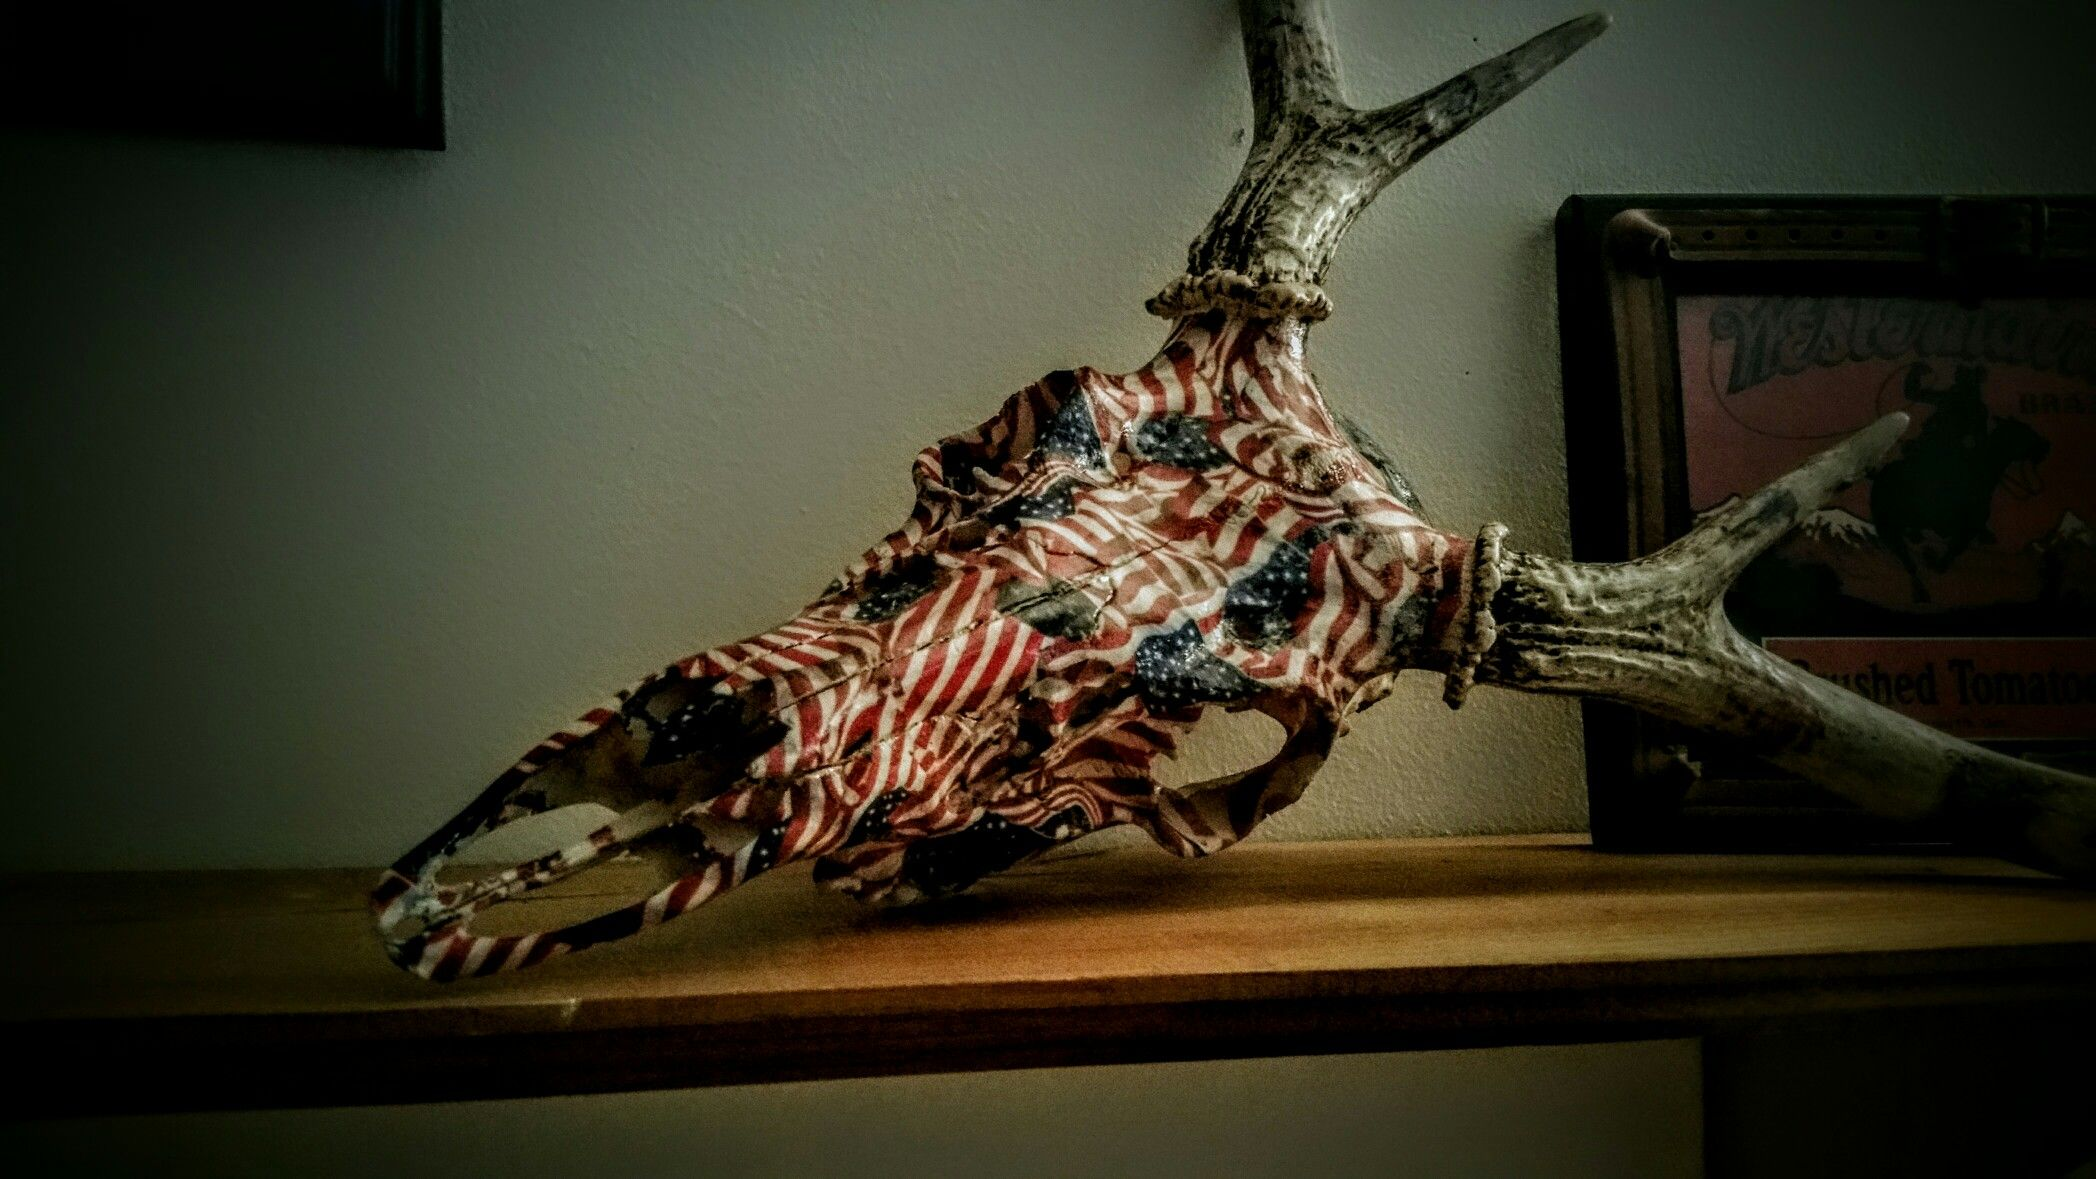 Hydrographics hydrodipped deer skull